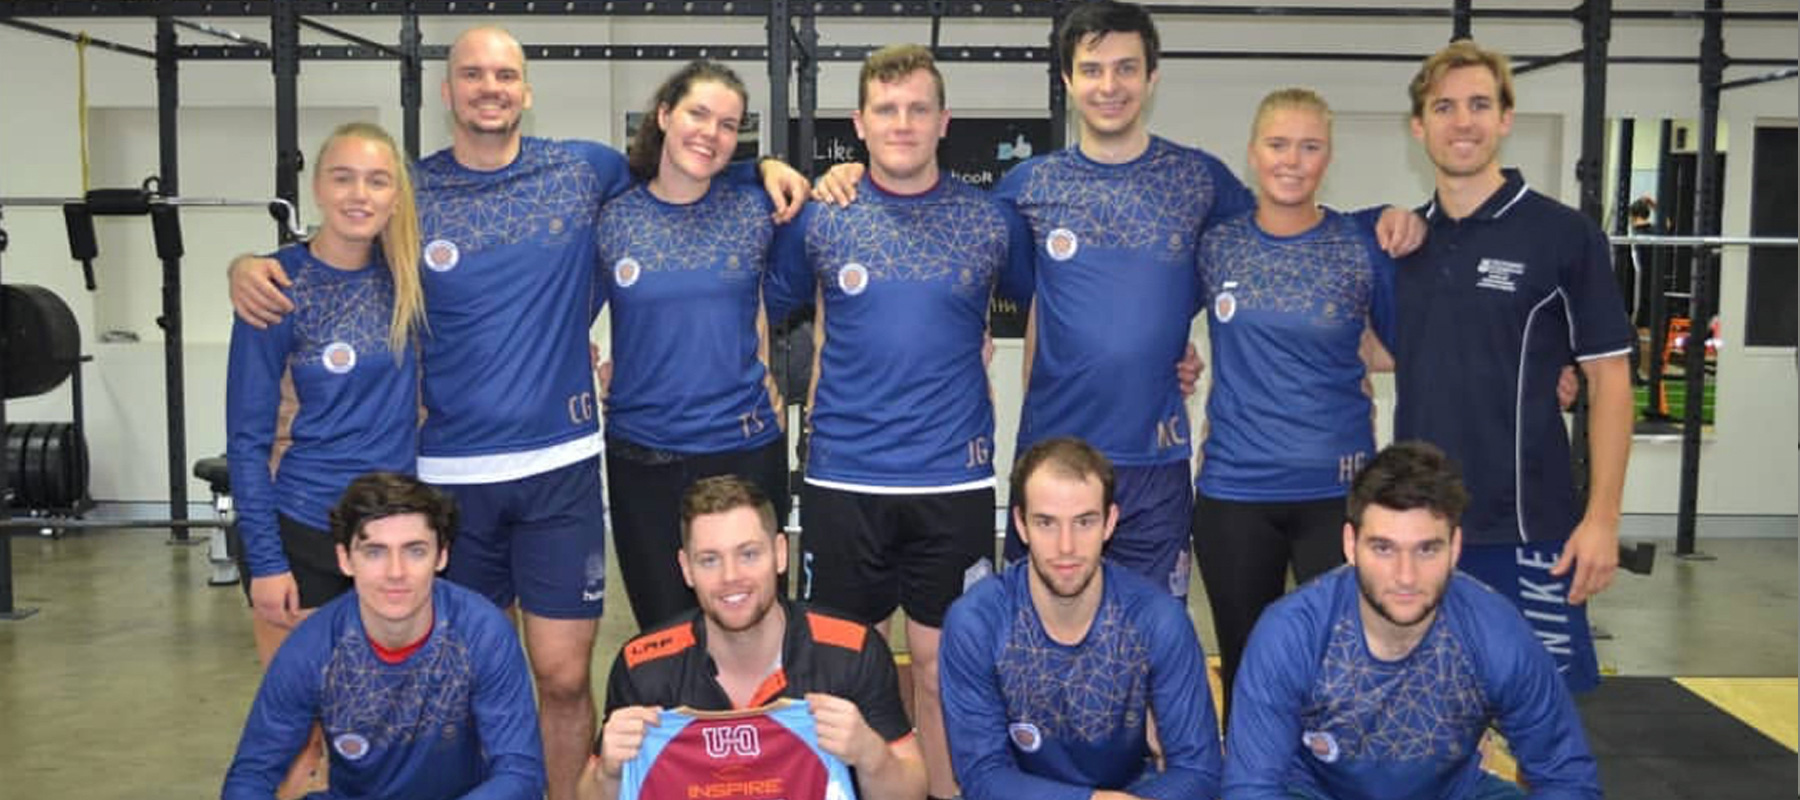 handball team with new jerseys